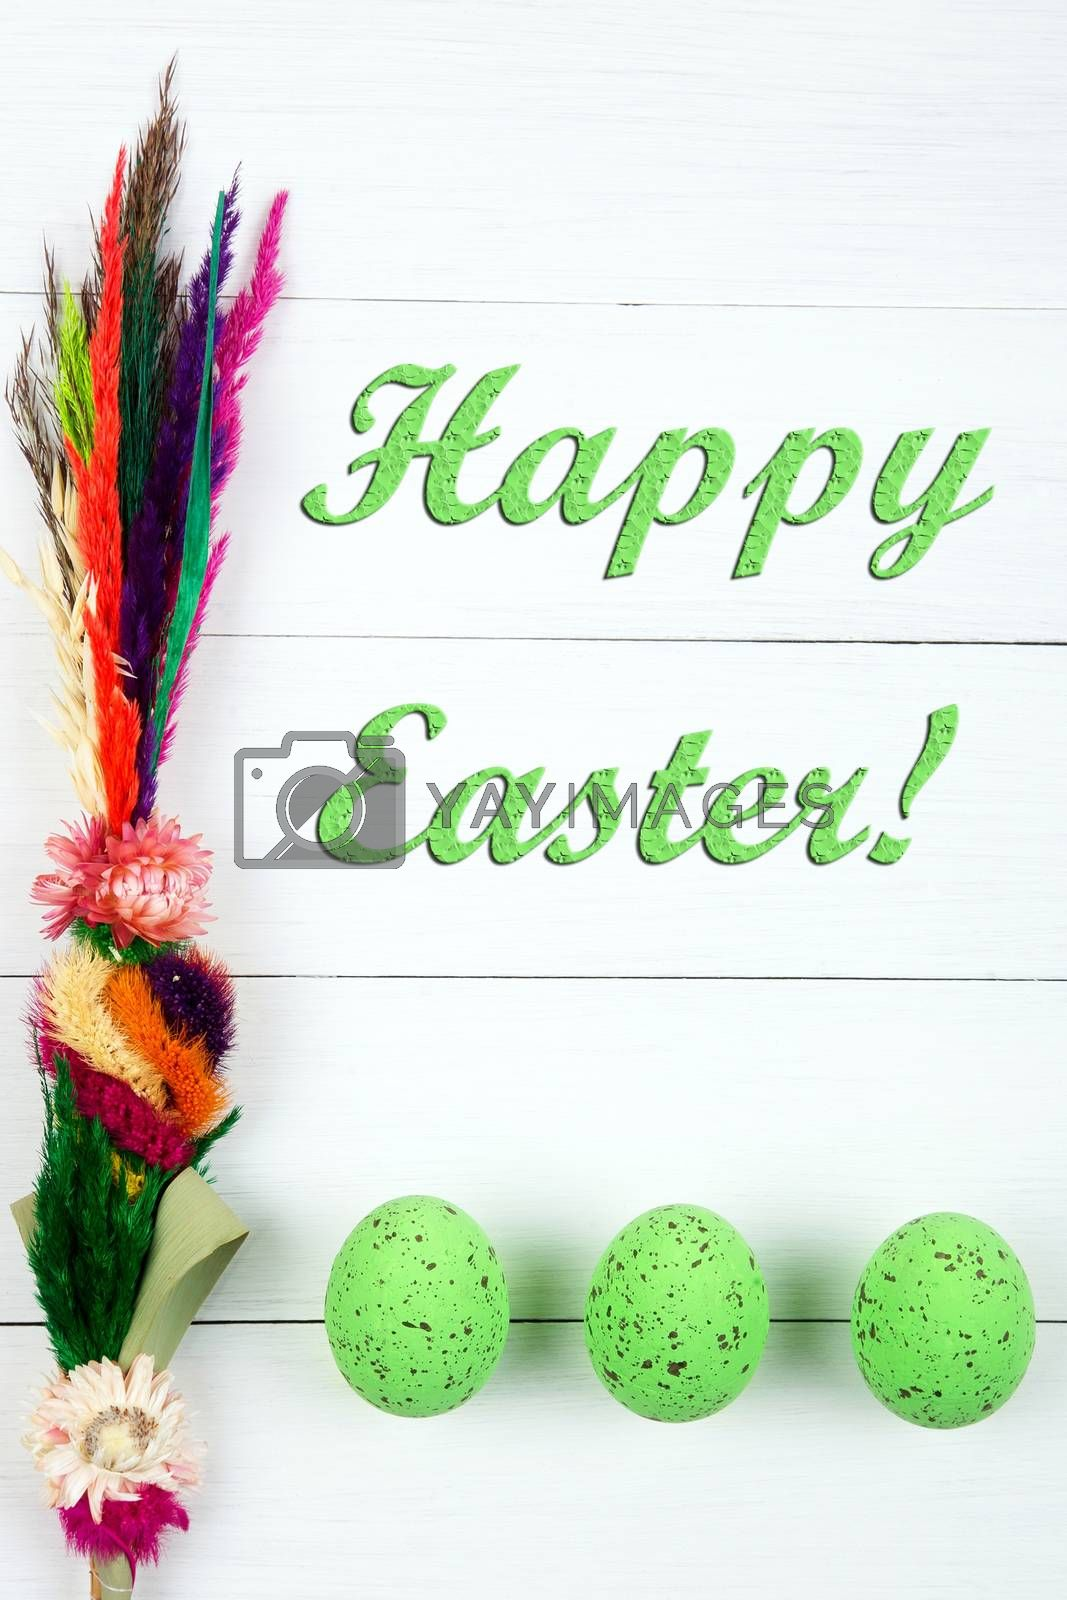 Happy easter! - easter eggs on a wooden background